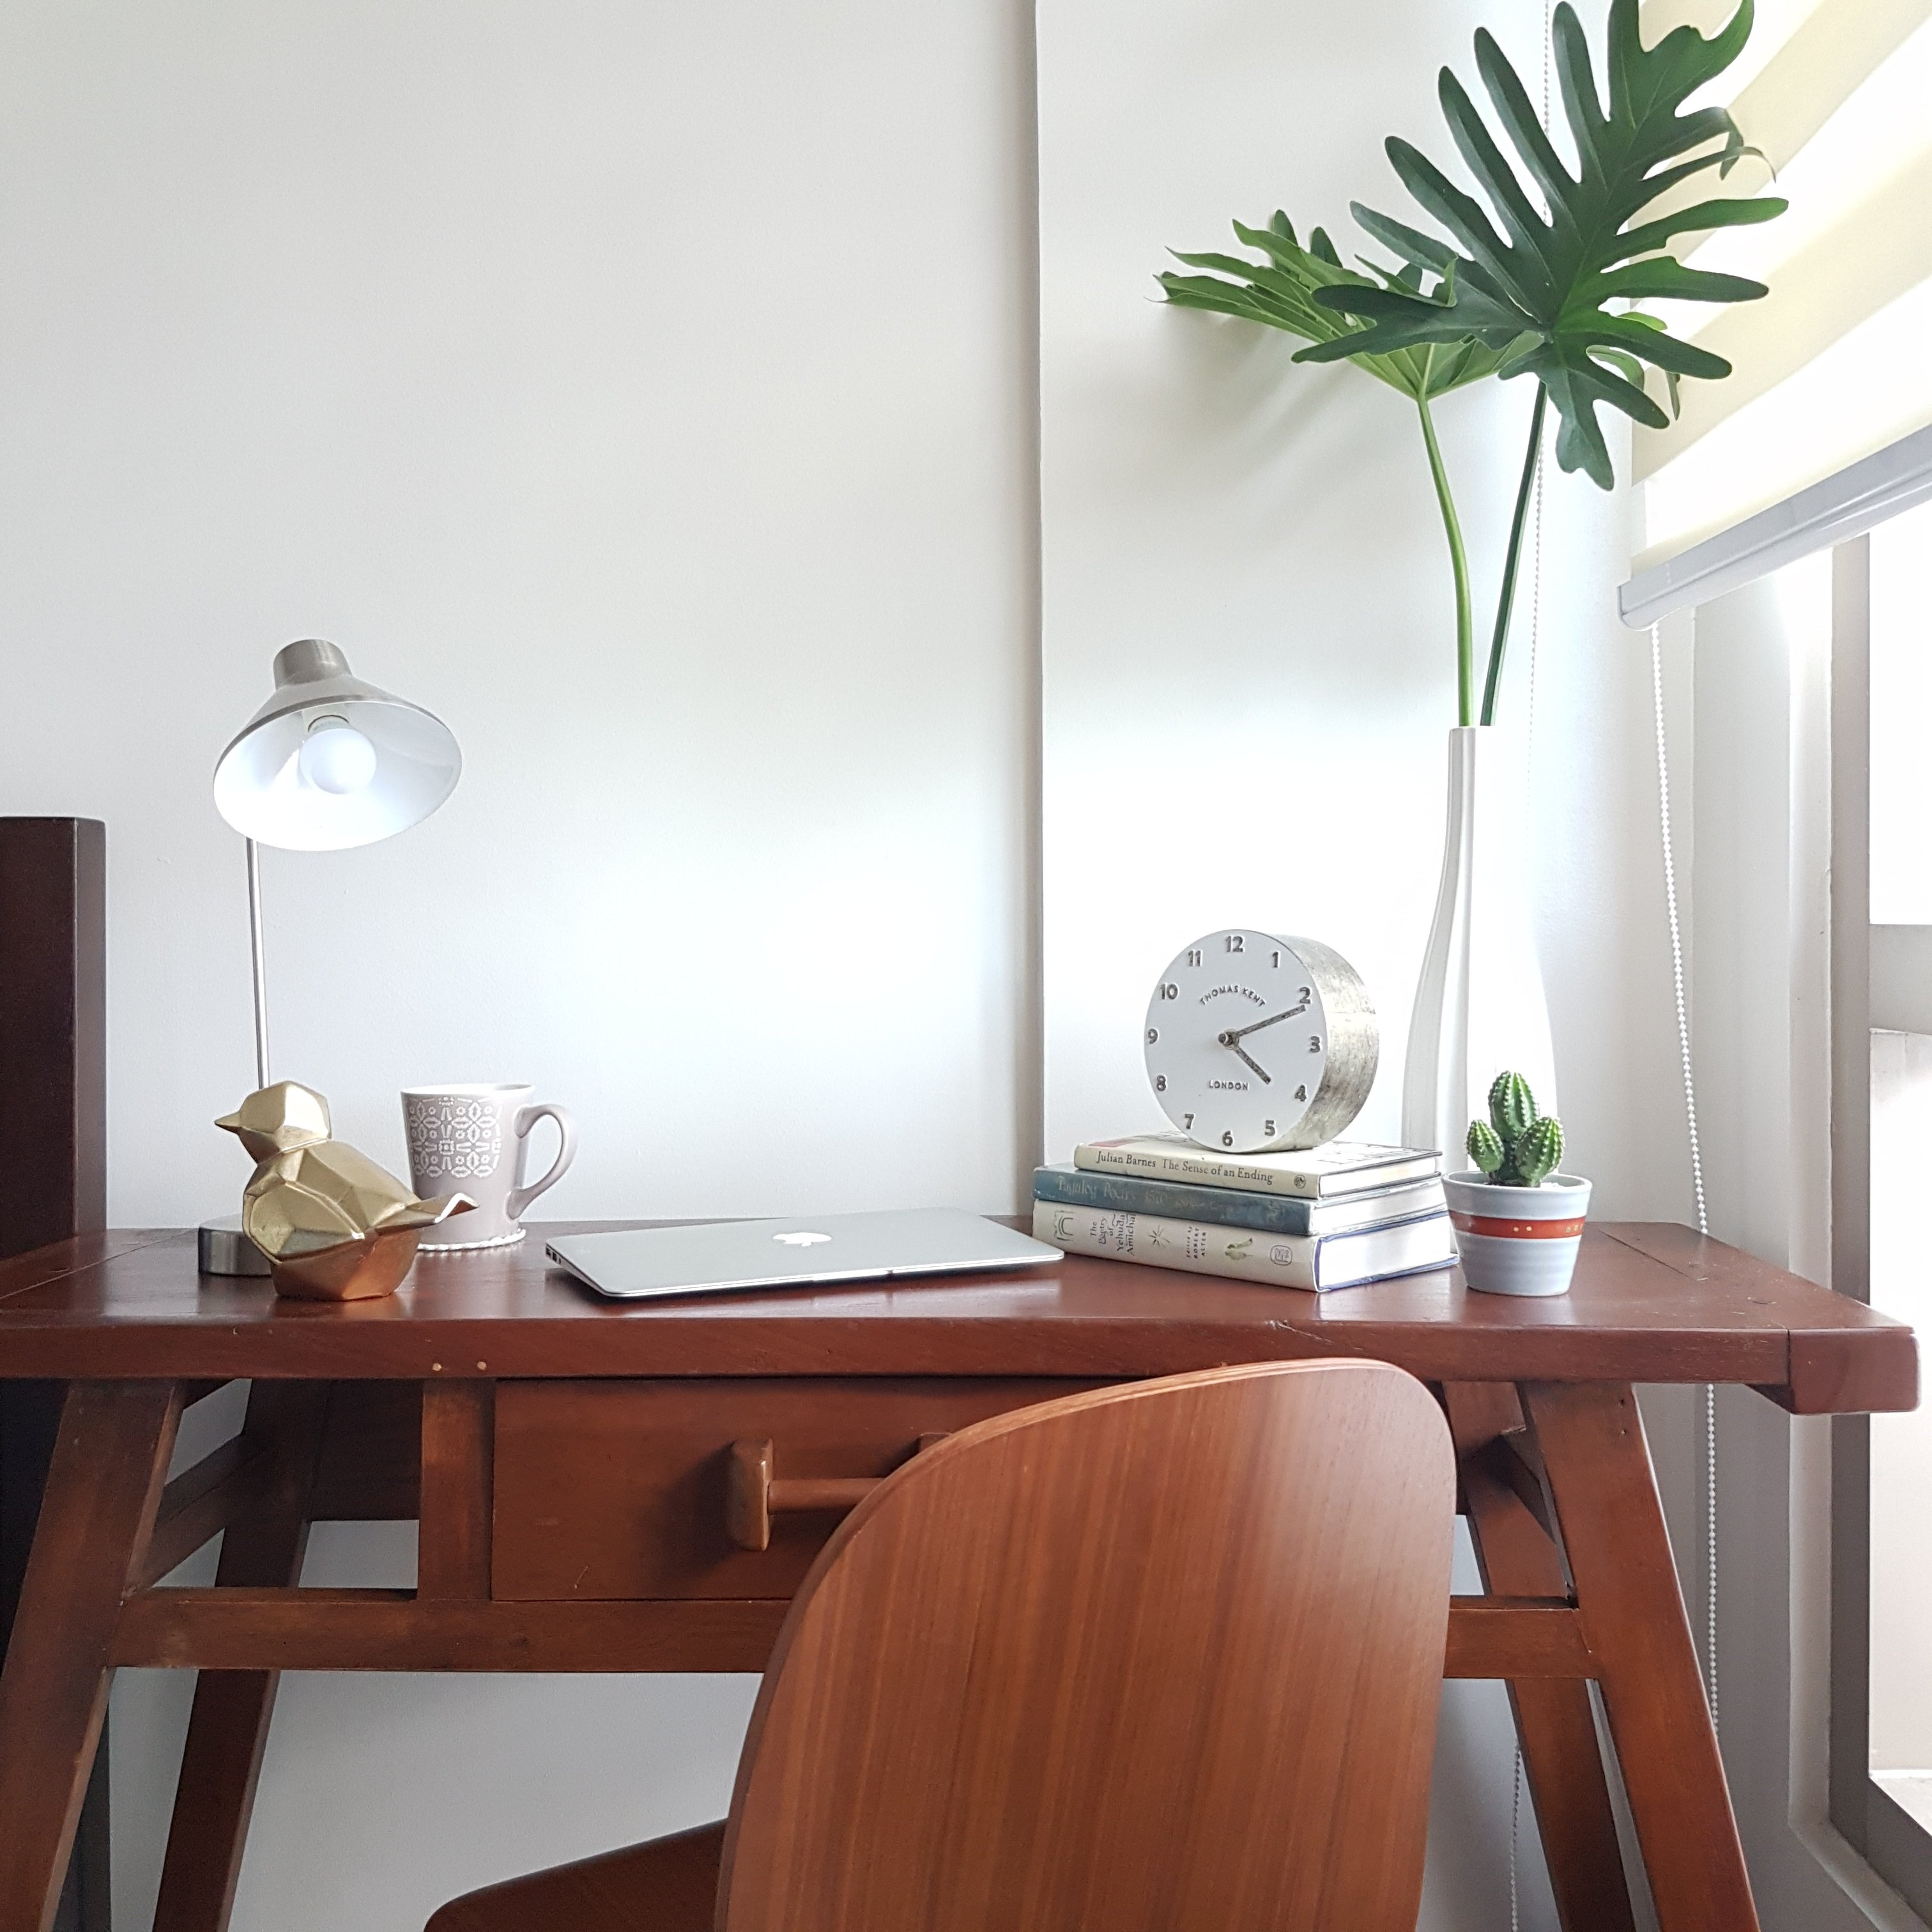 wooden work desk and chair with plant cuttings on top